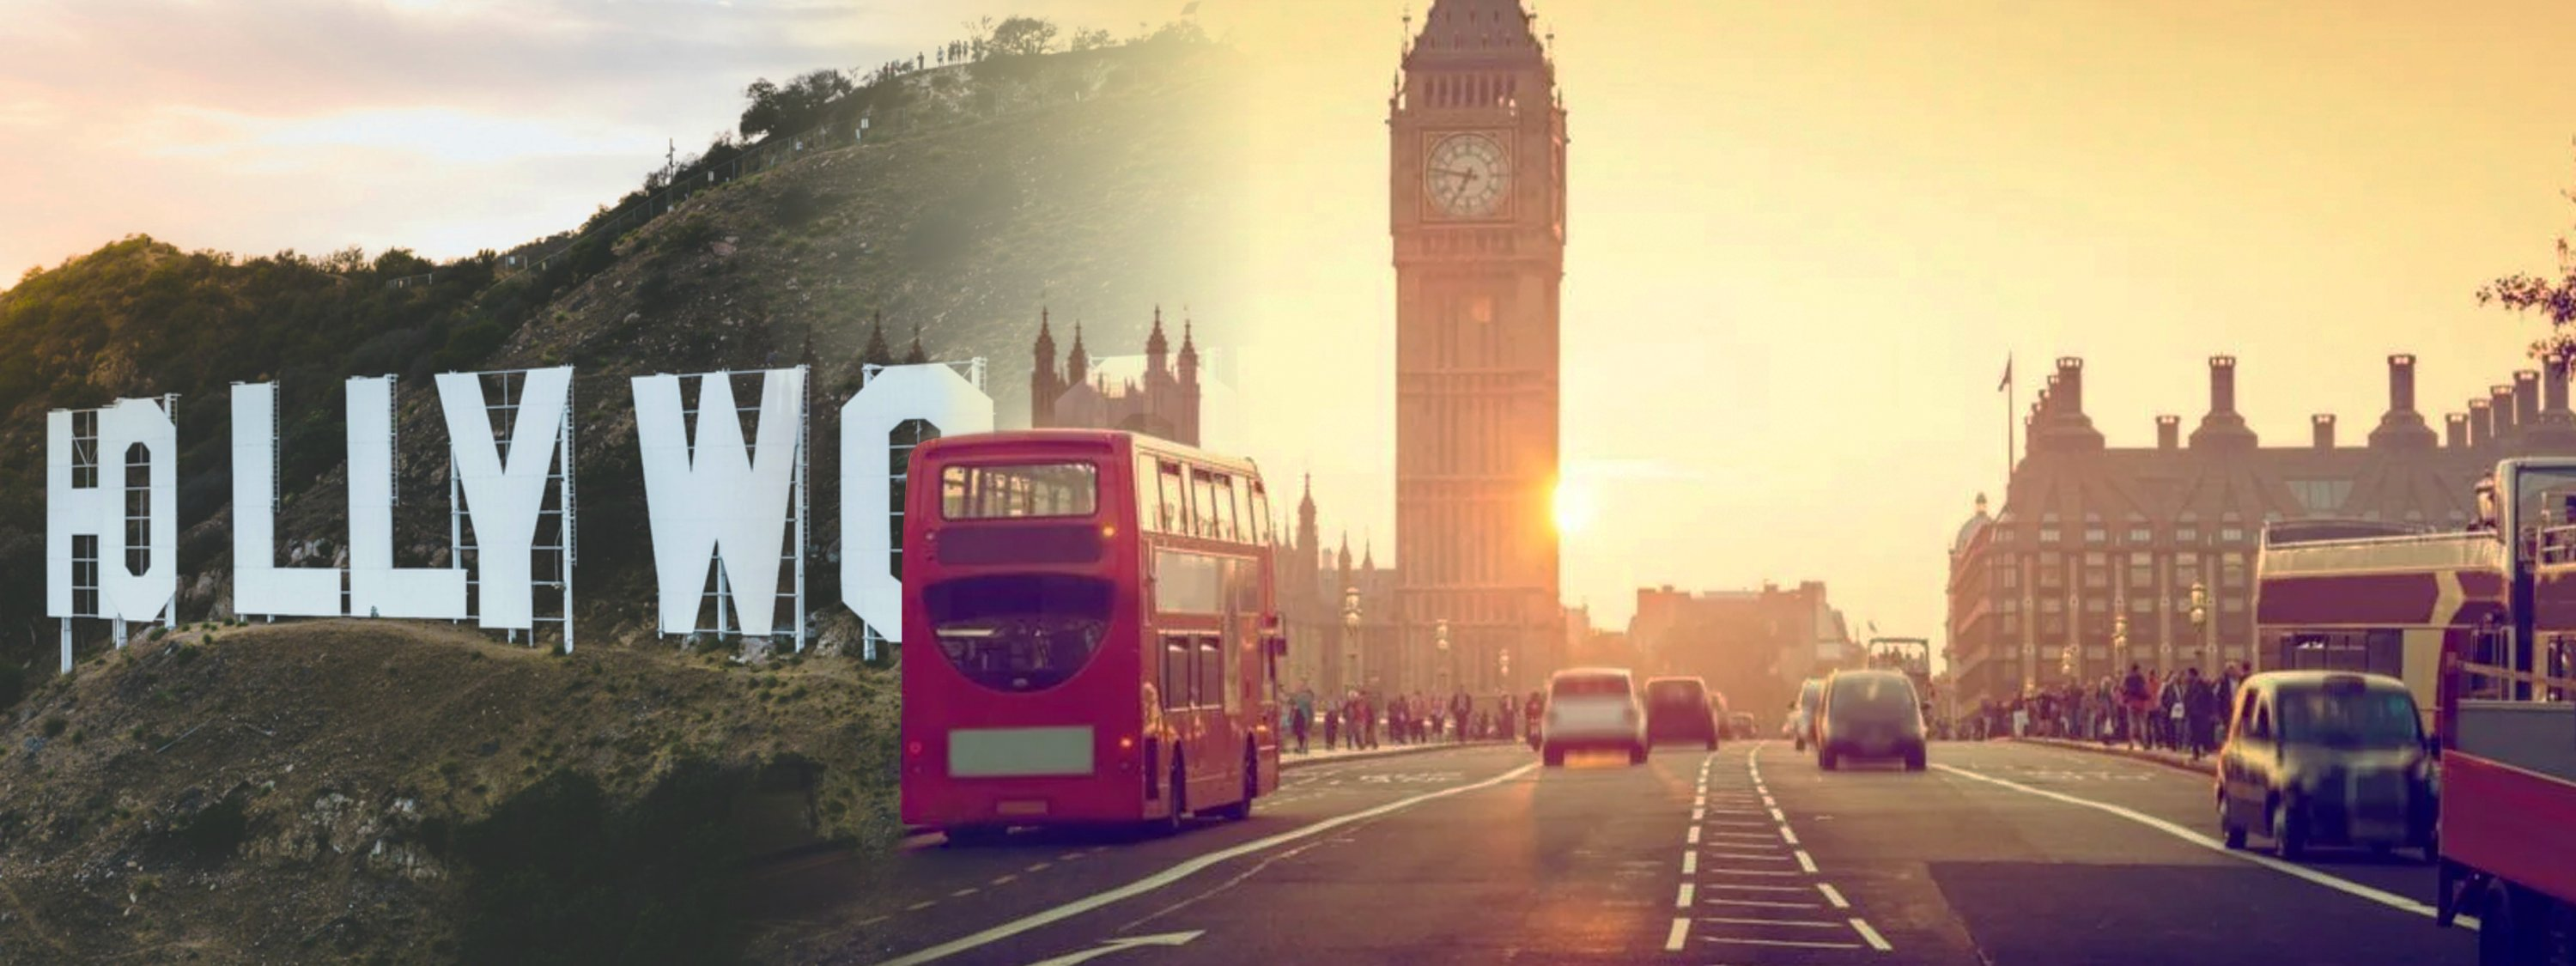 Photo manipulation of the Hollywood sign and a street in London where the Big Ben is visible